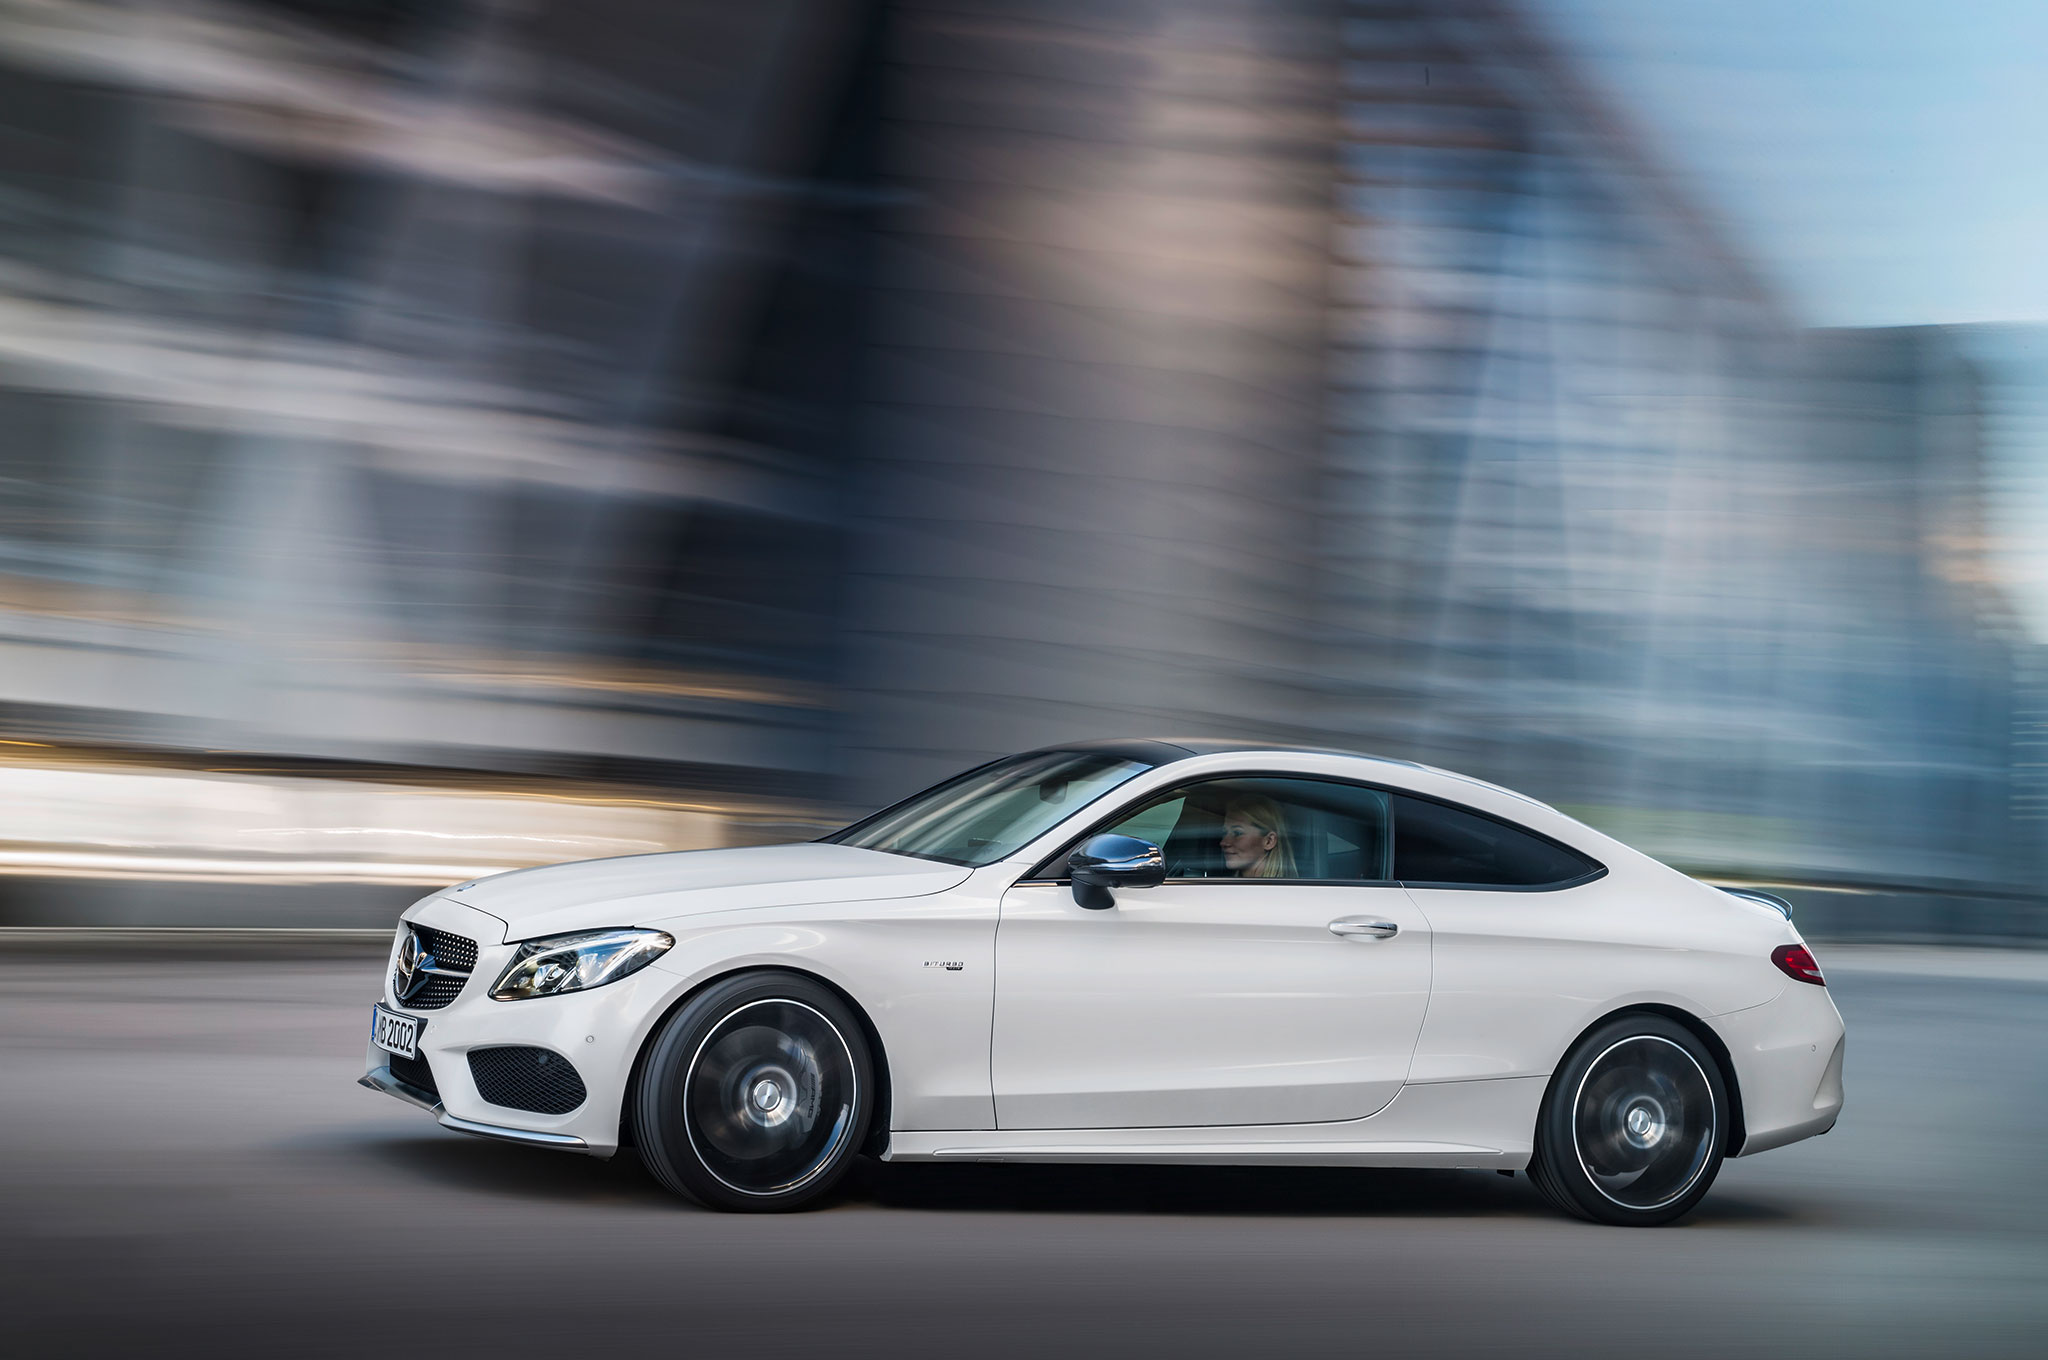 2017 mercedes-amg c43 coupe joins sedan with 362-hp v-6 engine